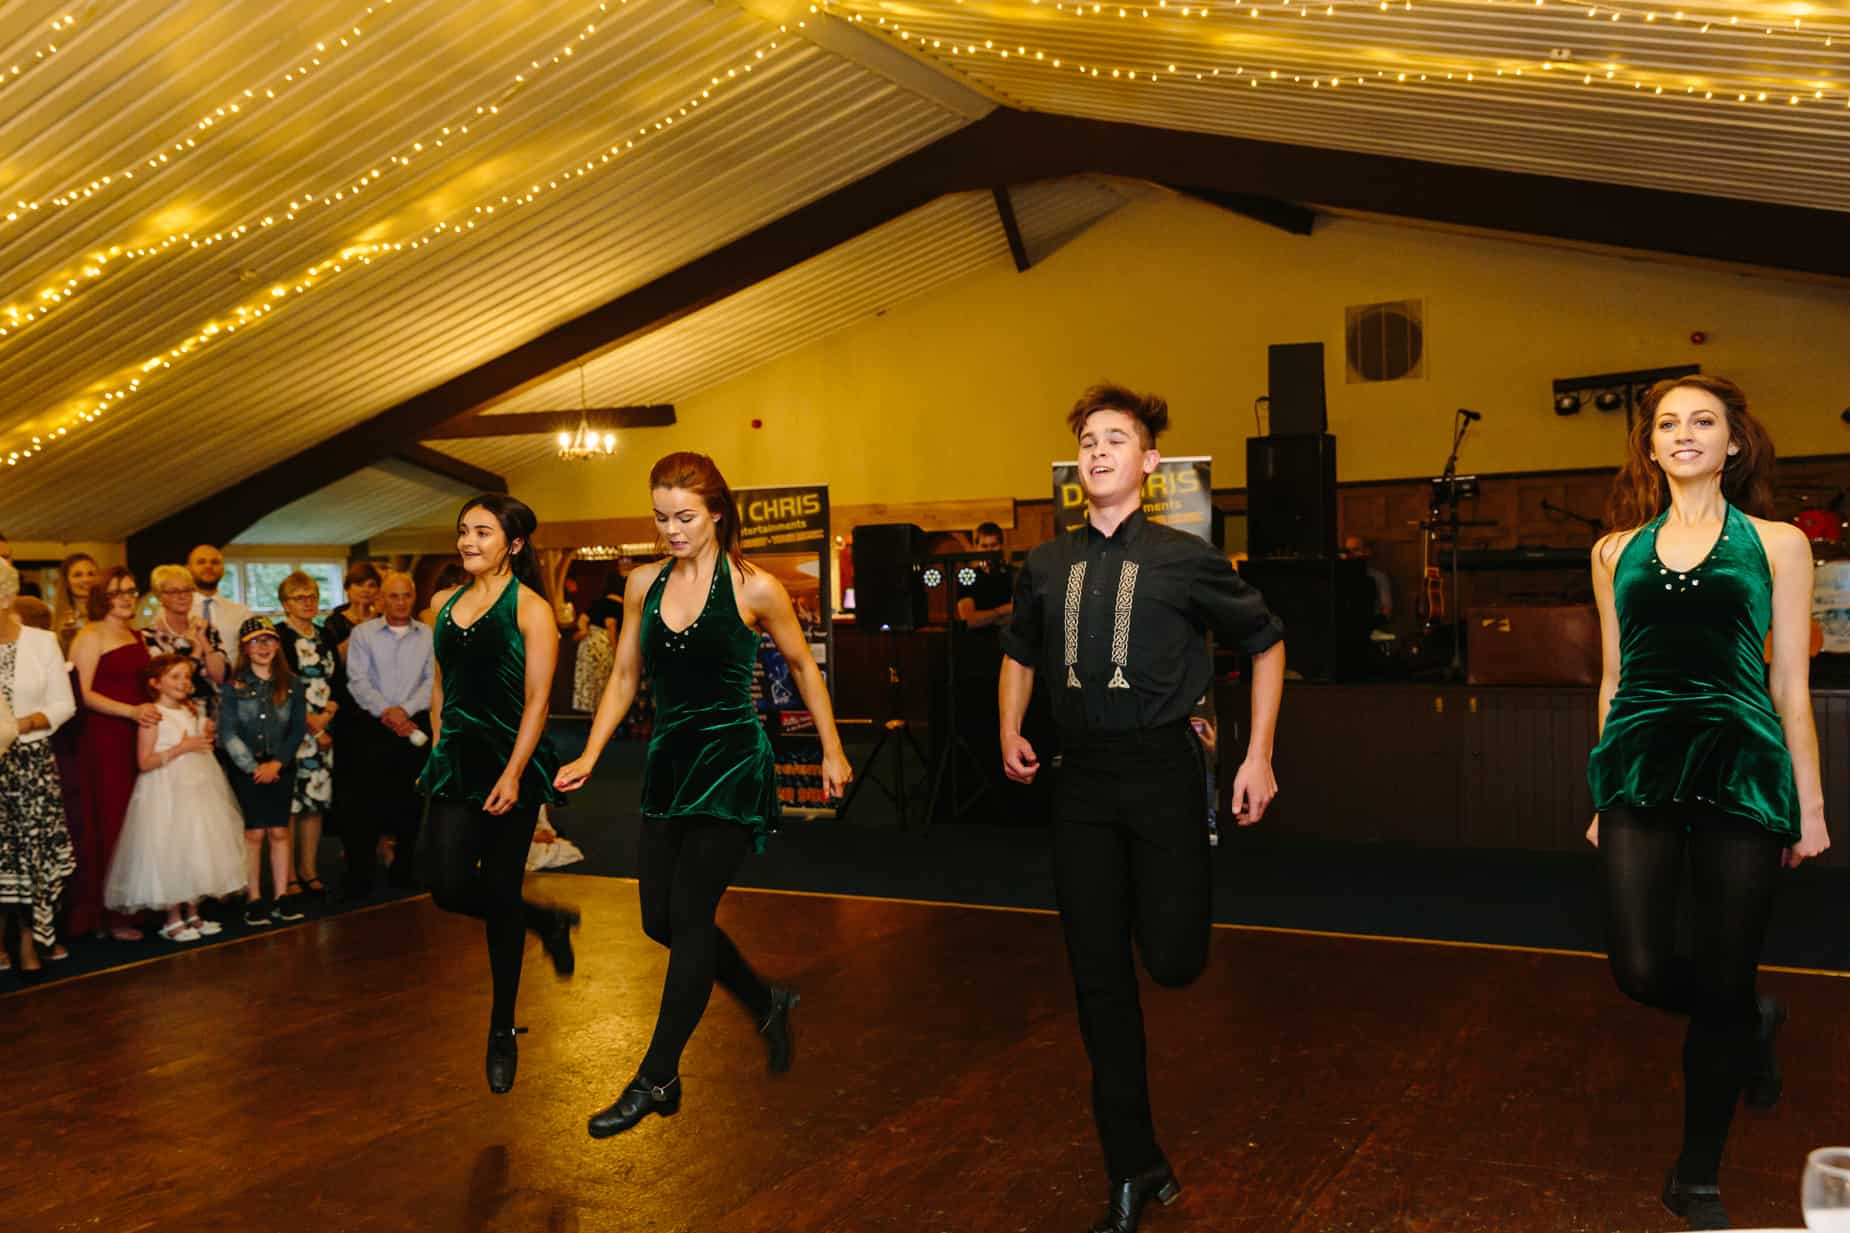 Irish dancers wearing green velvet dancing at a wedding